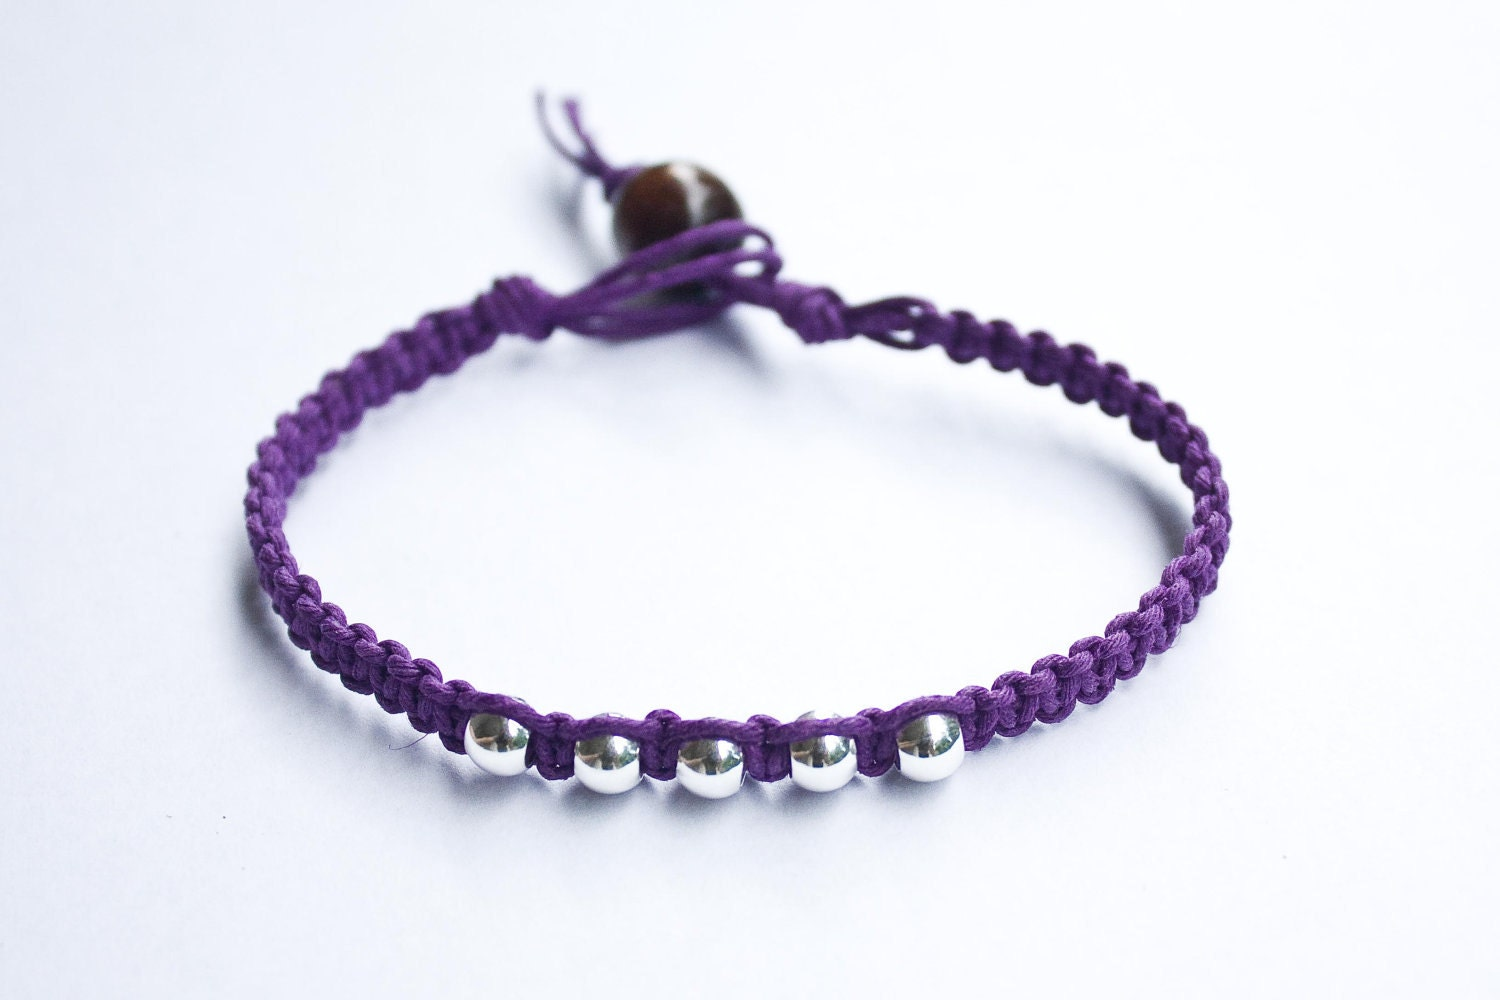 Gallery For > How To Make Friendship Bracelets With Beads How To Make Friendship Bracelets With Beads